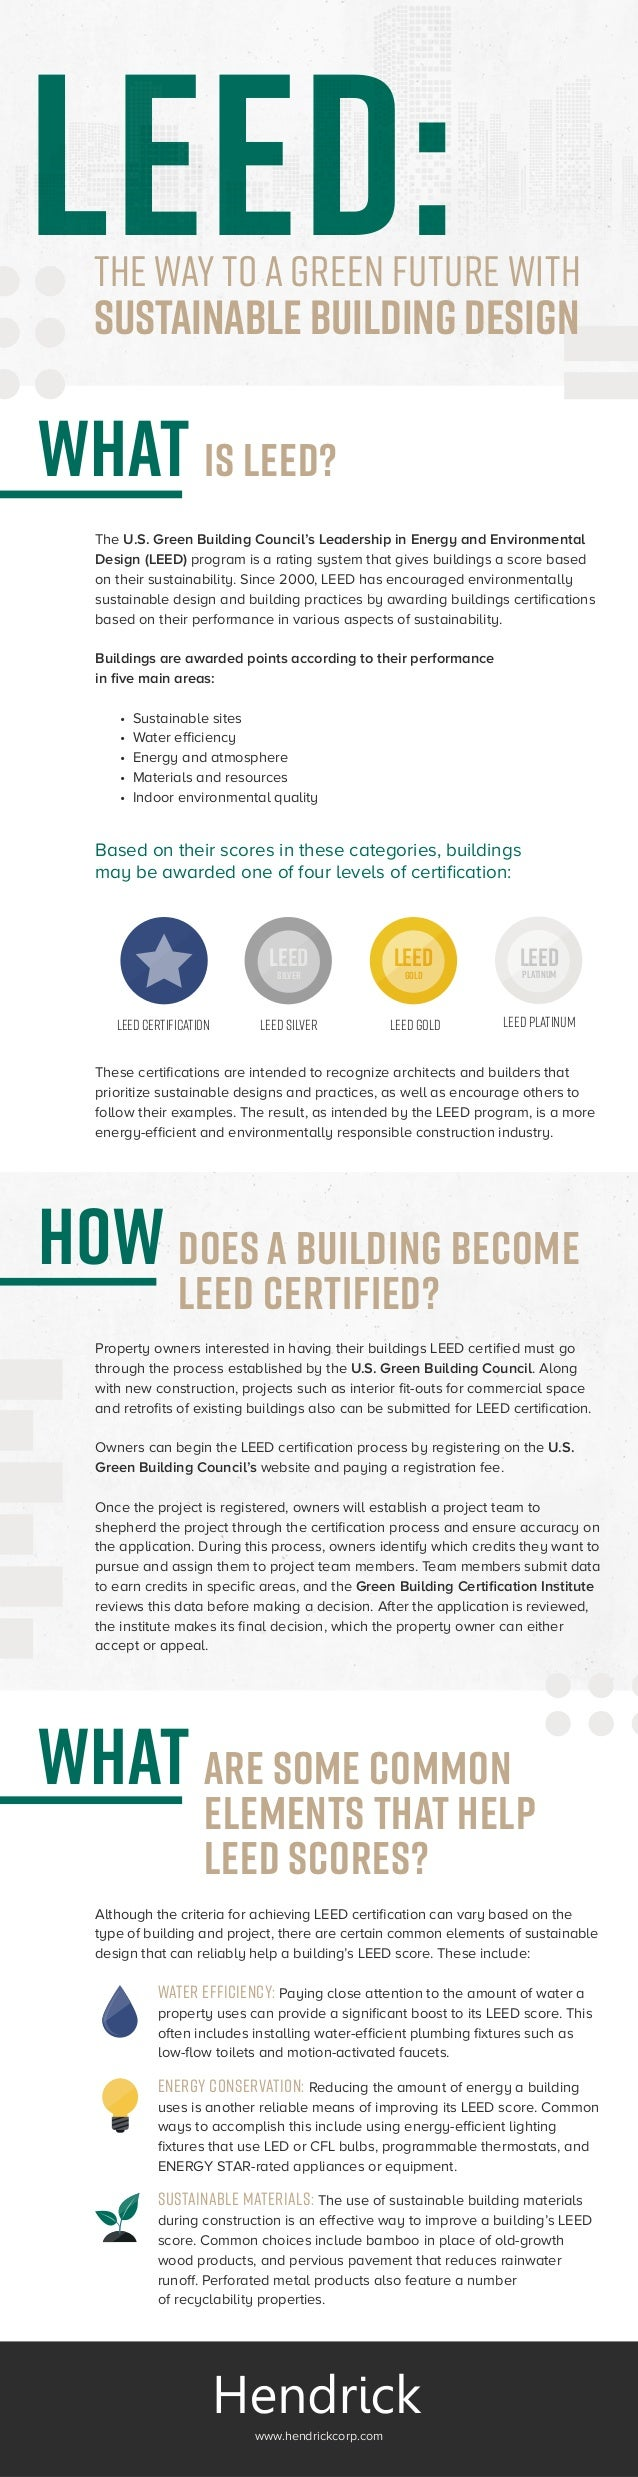 Leed The Way To A Sustainable Future With Sustainable Building